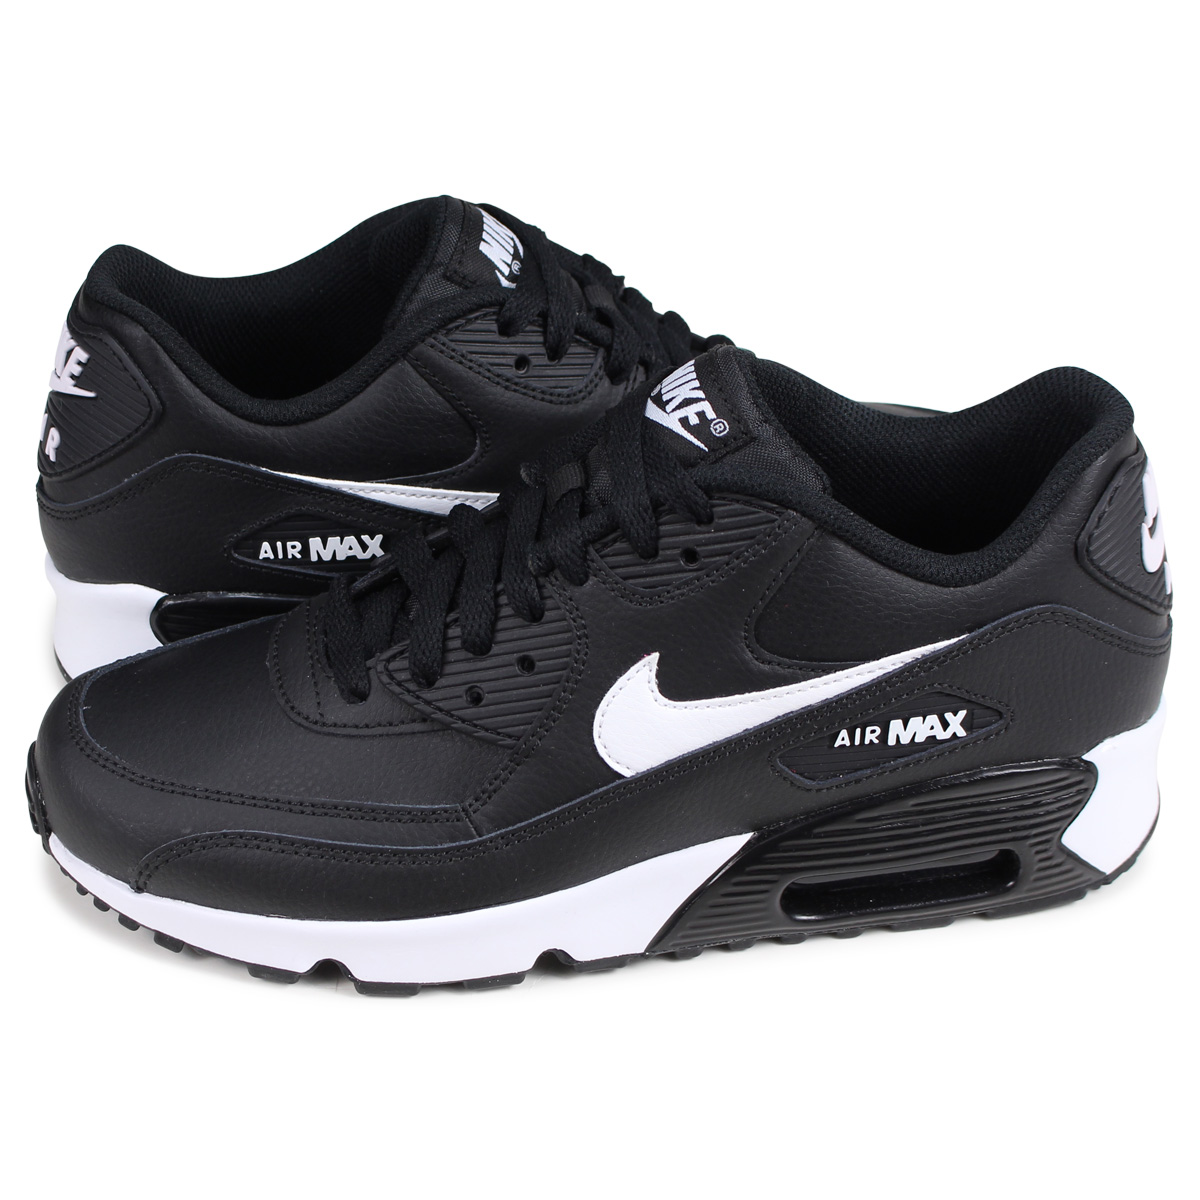 Nike NIKE Air Max 90 sneakers Lady's AIR MAX 90 LEATHER GS black black 833,412 025